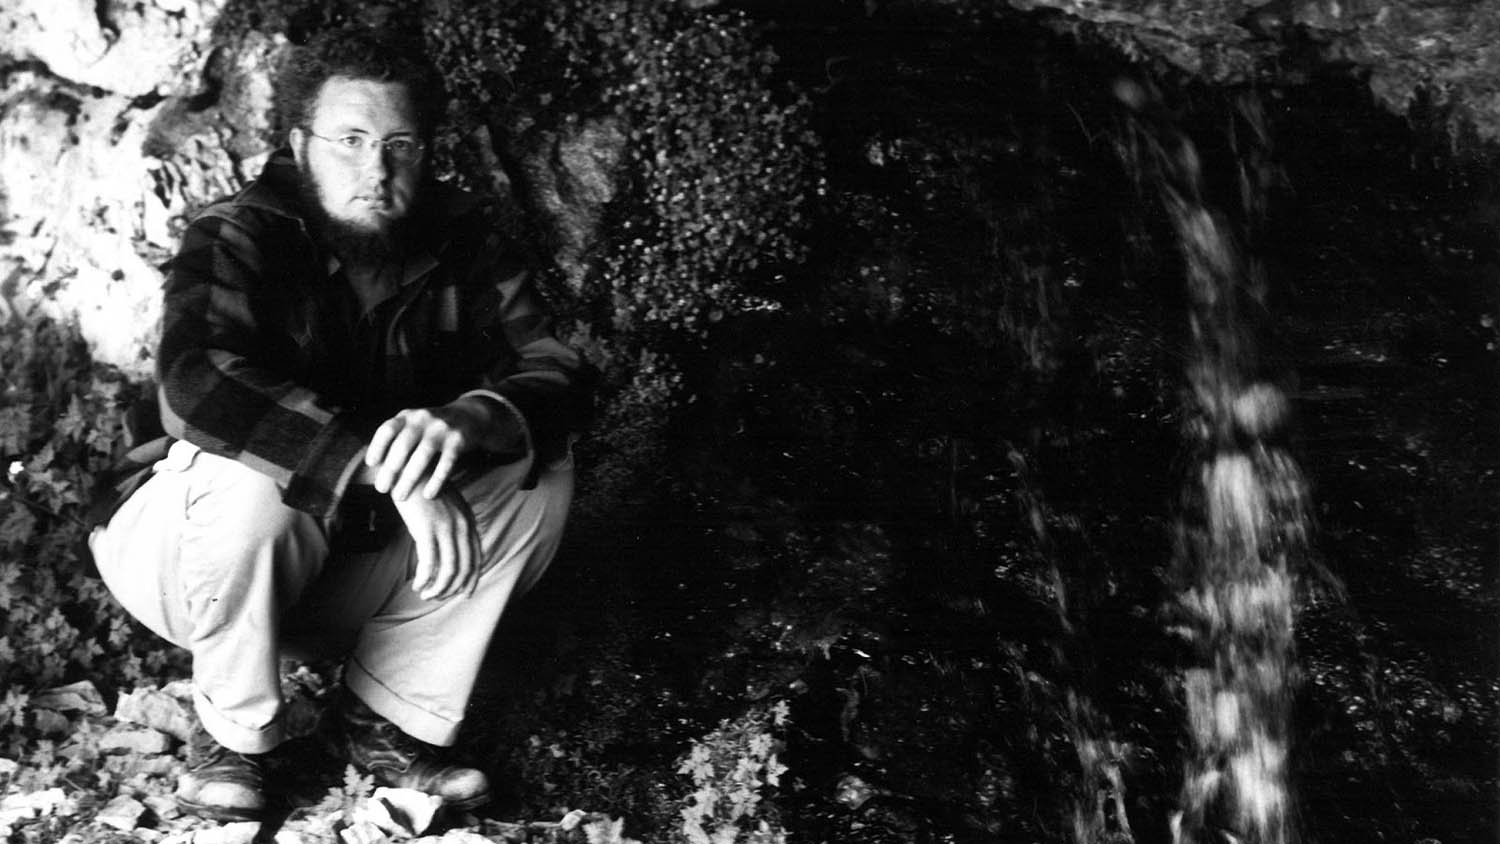 A black and white photo of Roger Manley in Mavroneri, the Cave of the Styx